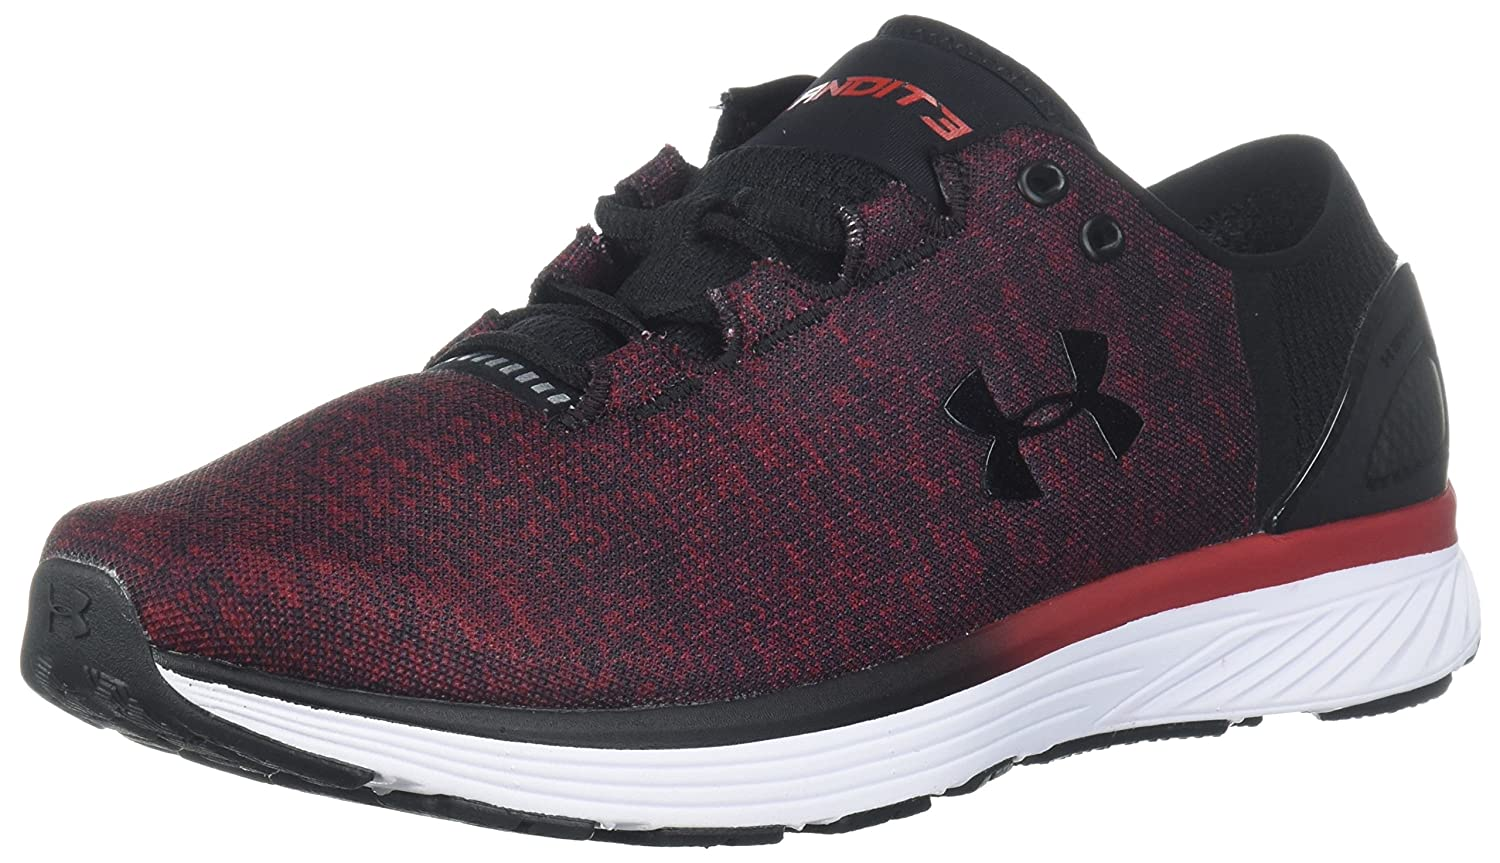 Under Armour Women's Charged Bandit 3 Running Shoe B0714DFYQW 11.5 M US|Spice Red (603)/Black